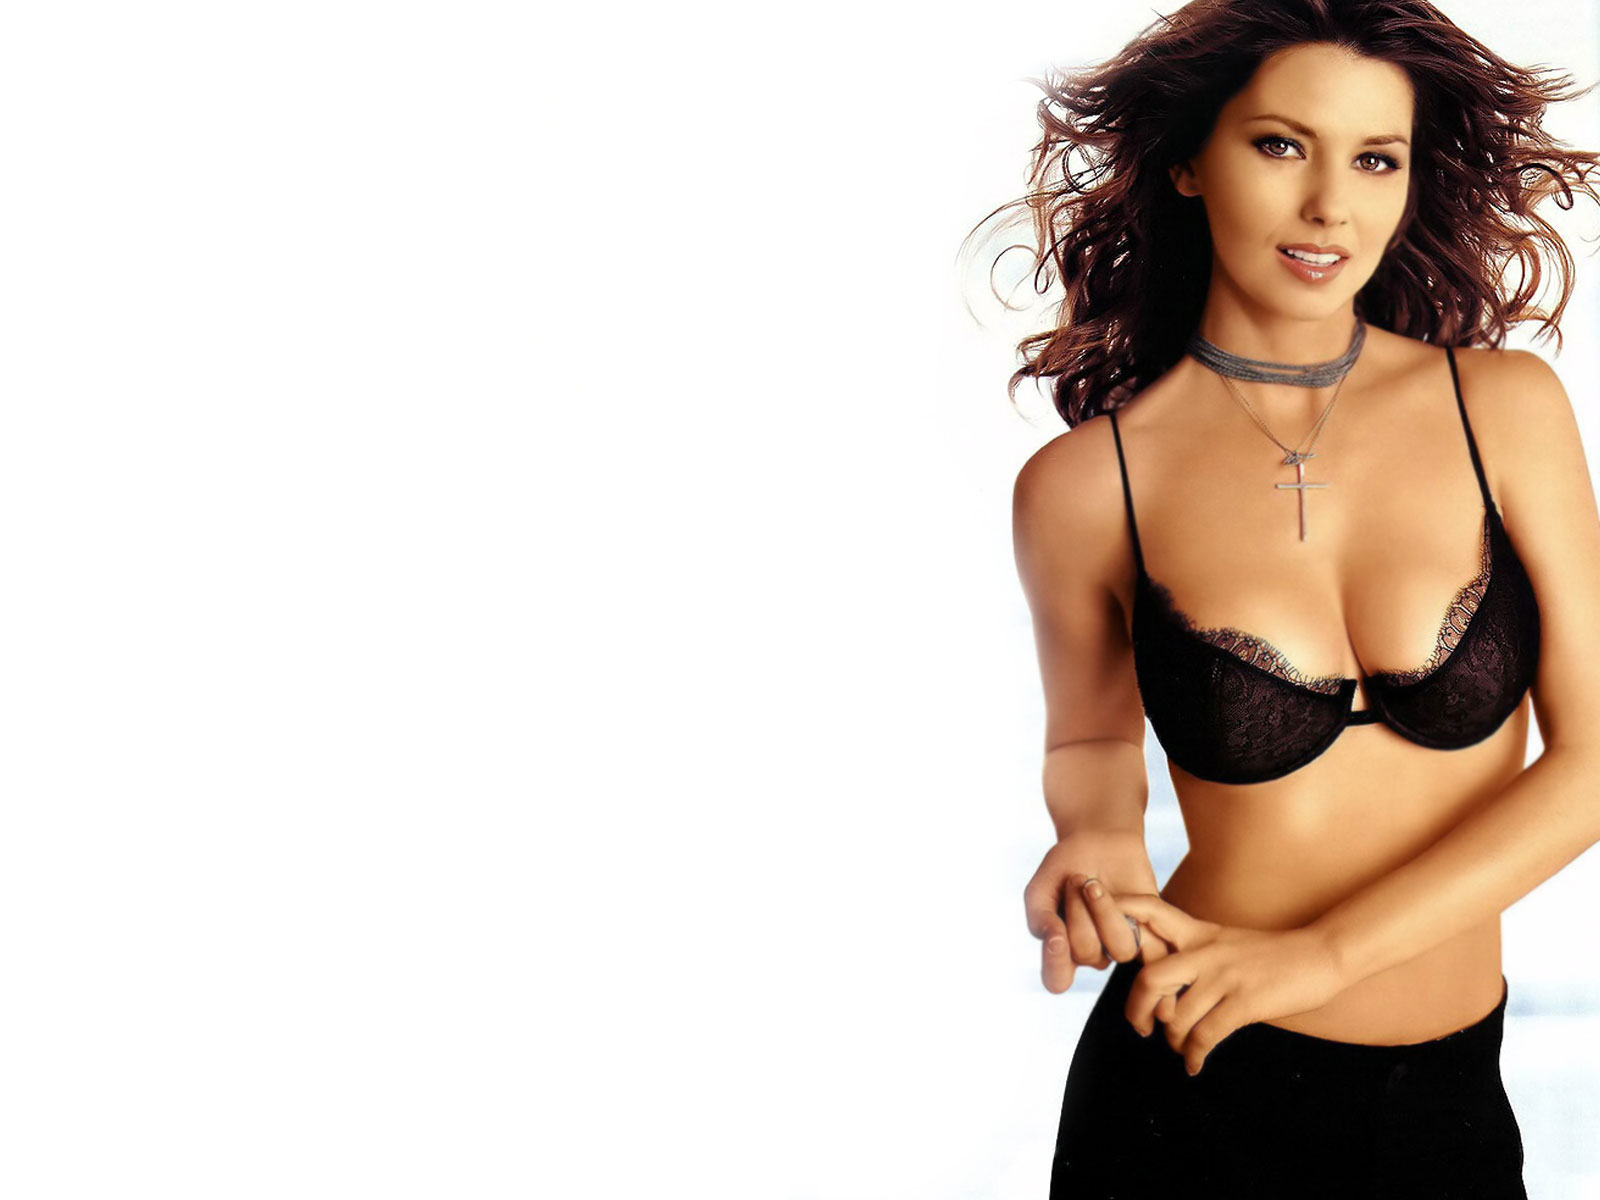 Soccer For Life Wallpaper Quotes Download Shania Twain Wallpapers Gallery